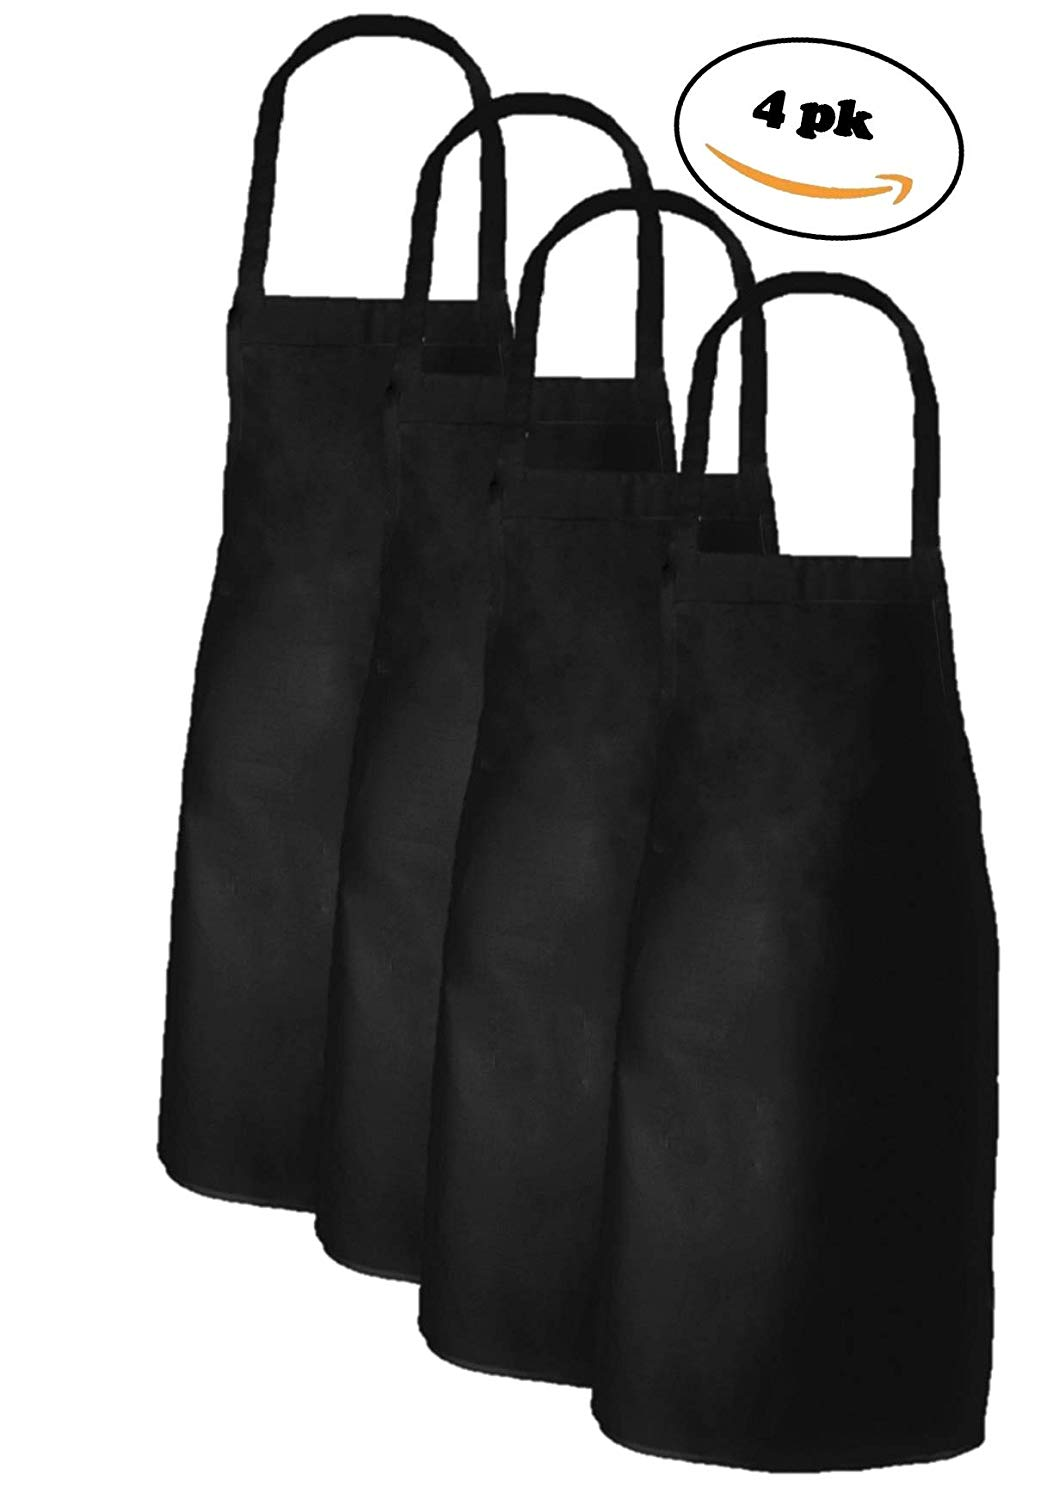 Elaine Karen Adult Men's Women's Unisex Chefs Bistro Adjustable Extra Long Ties, Professional Commercial Grade Bib Apron Black - 4PK